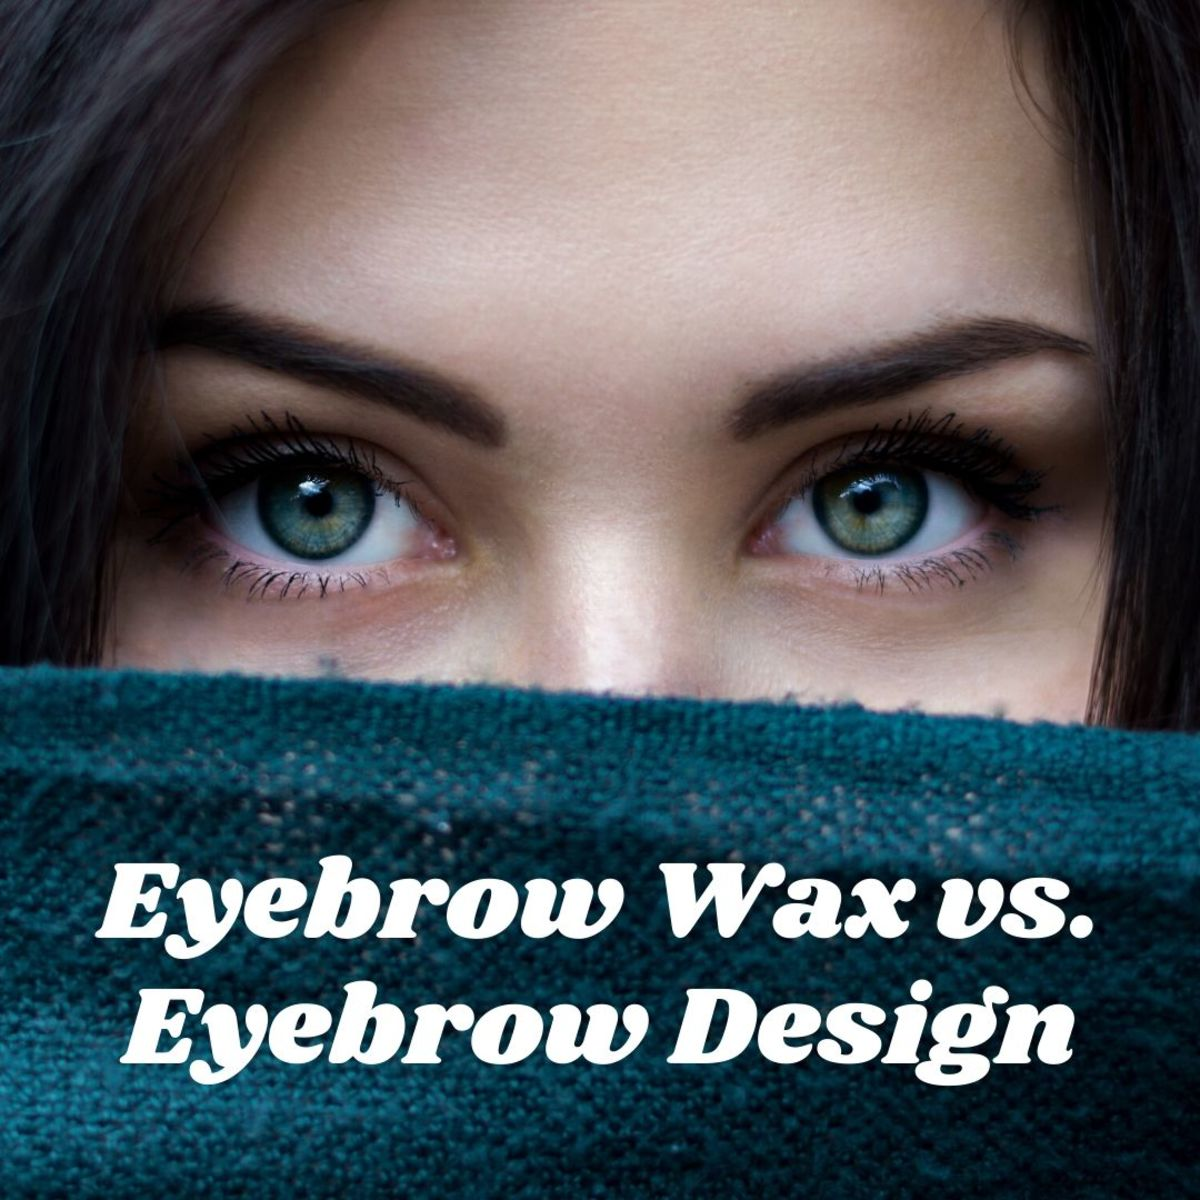 Learn the differences between an eyebrow wax and an eyebrow design